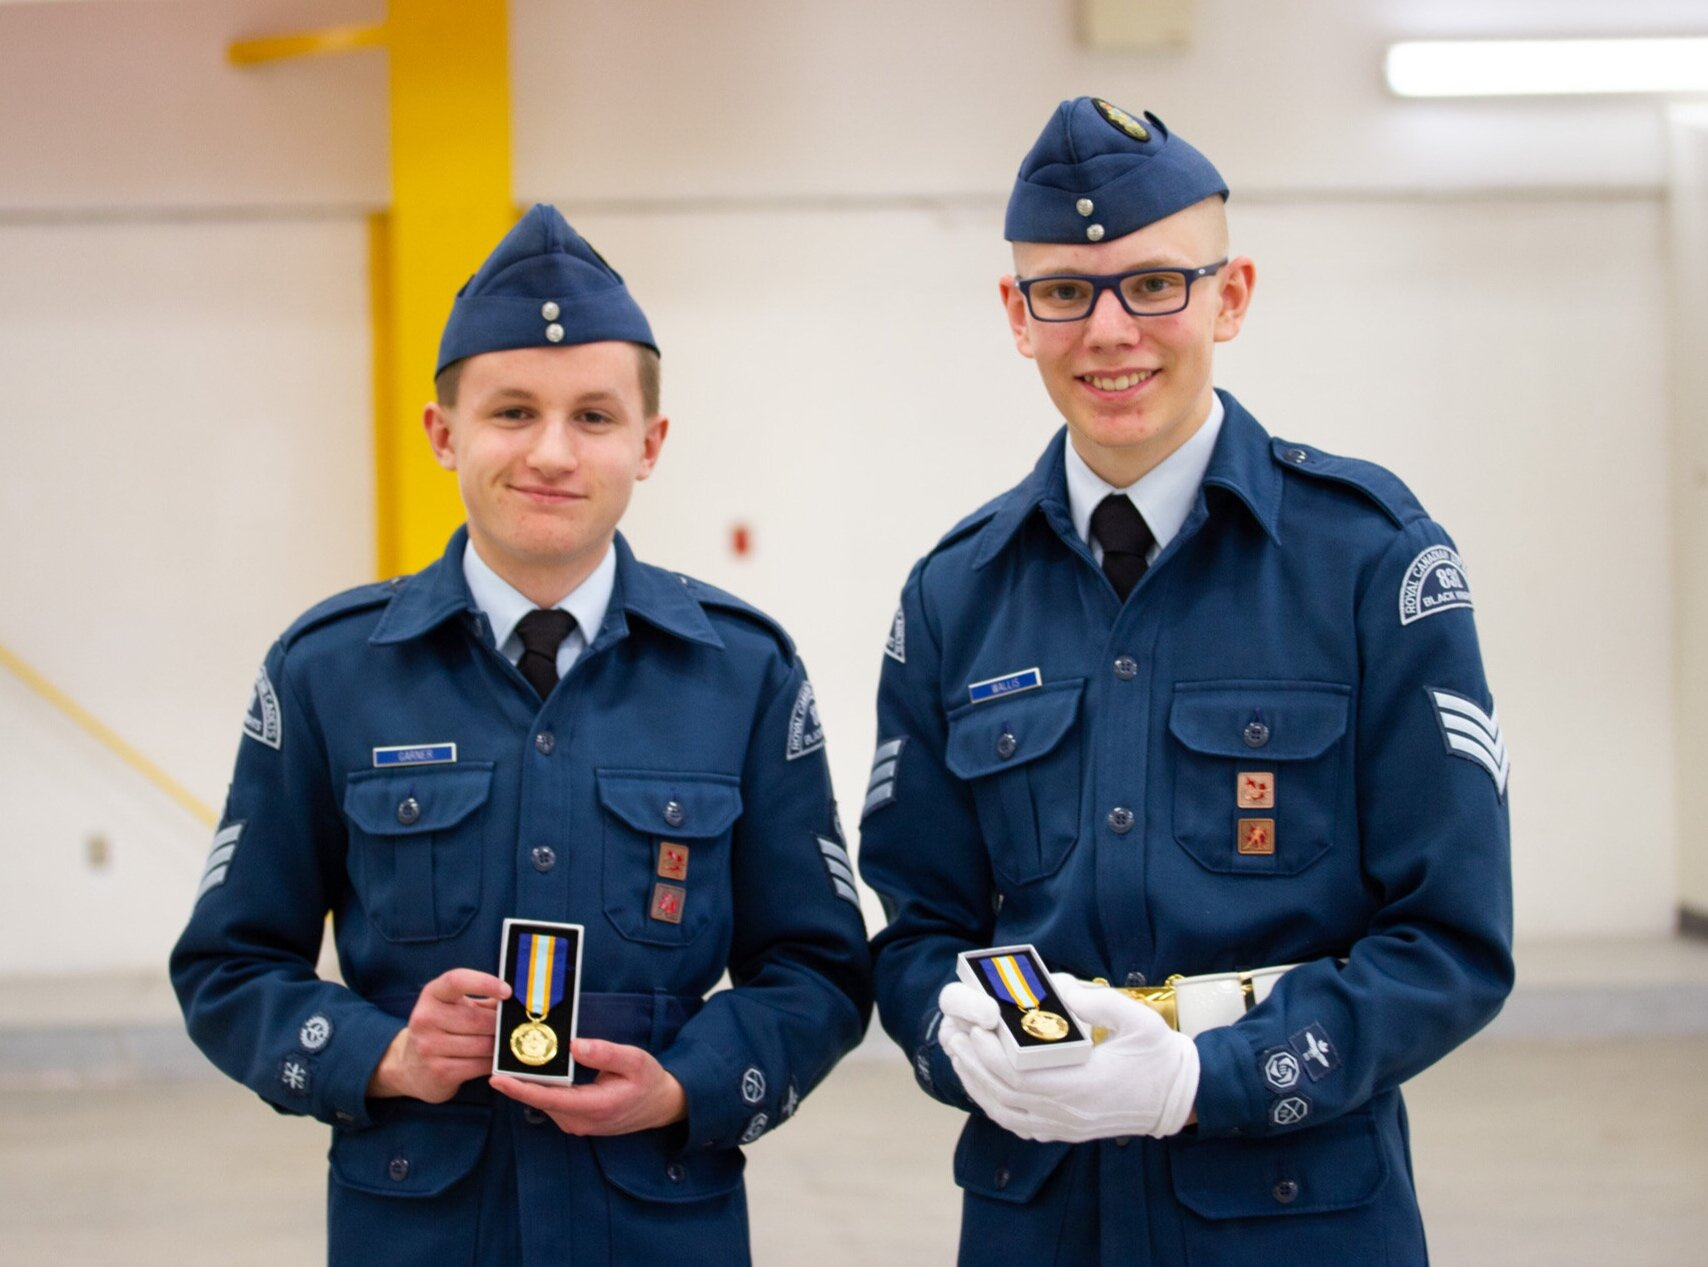 FSgt Garner (L) and Sgt Wallis (R) proudly displaying their long service medals at the 2019 Annual Ceremonial Review.